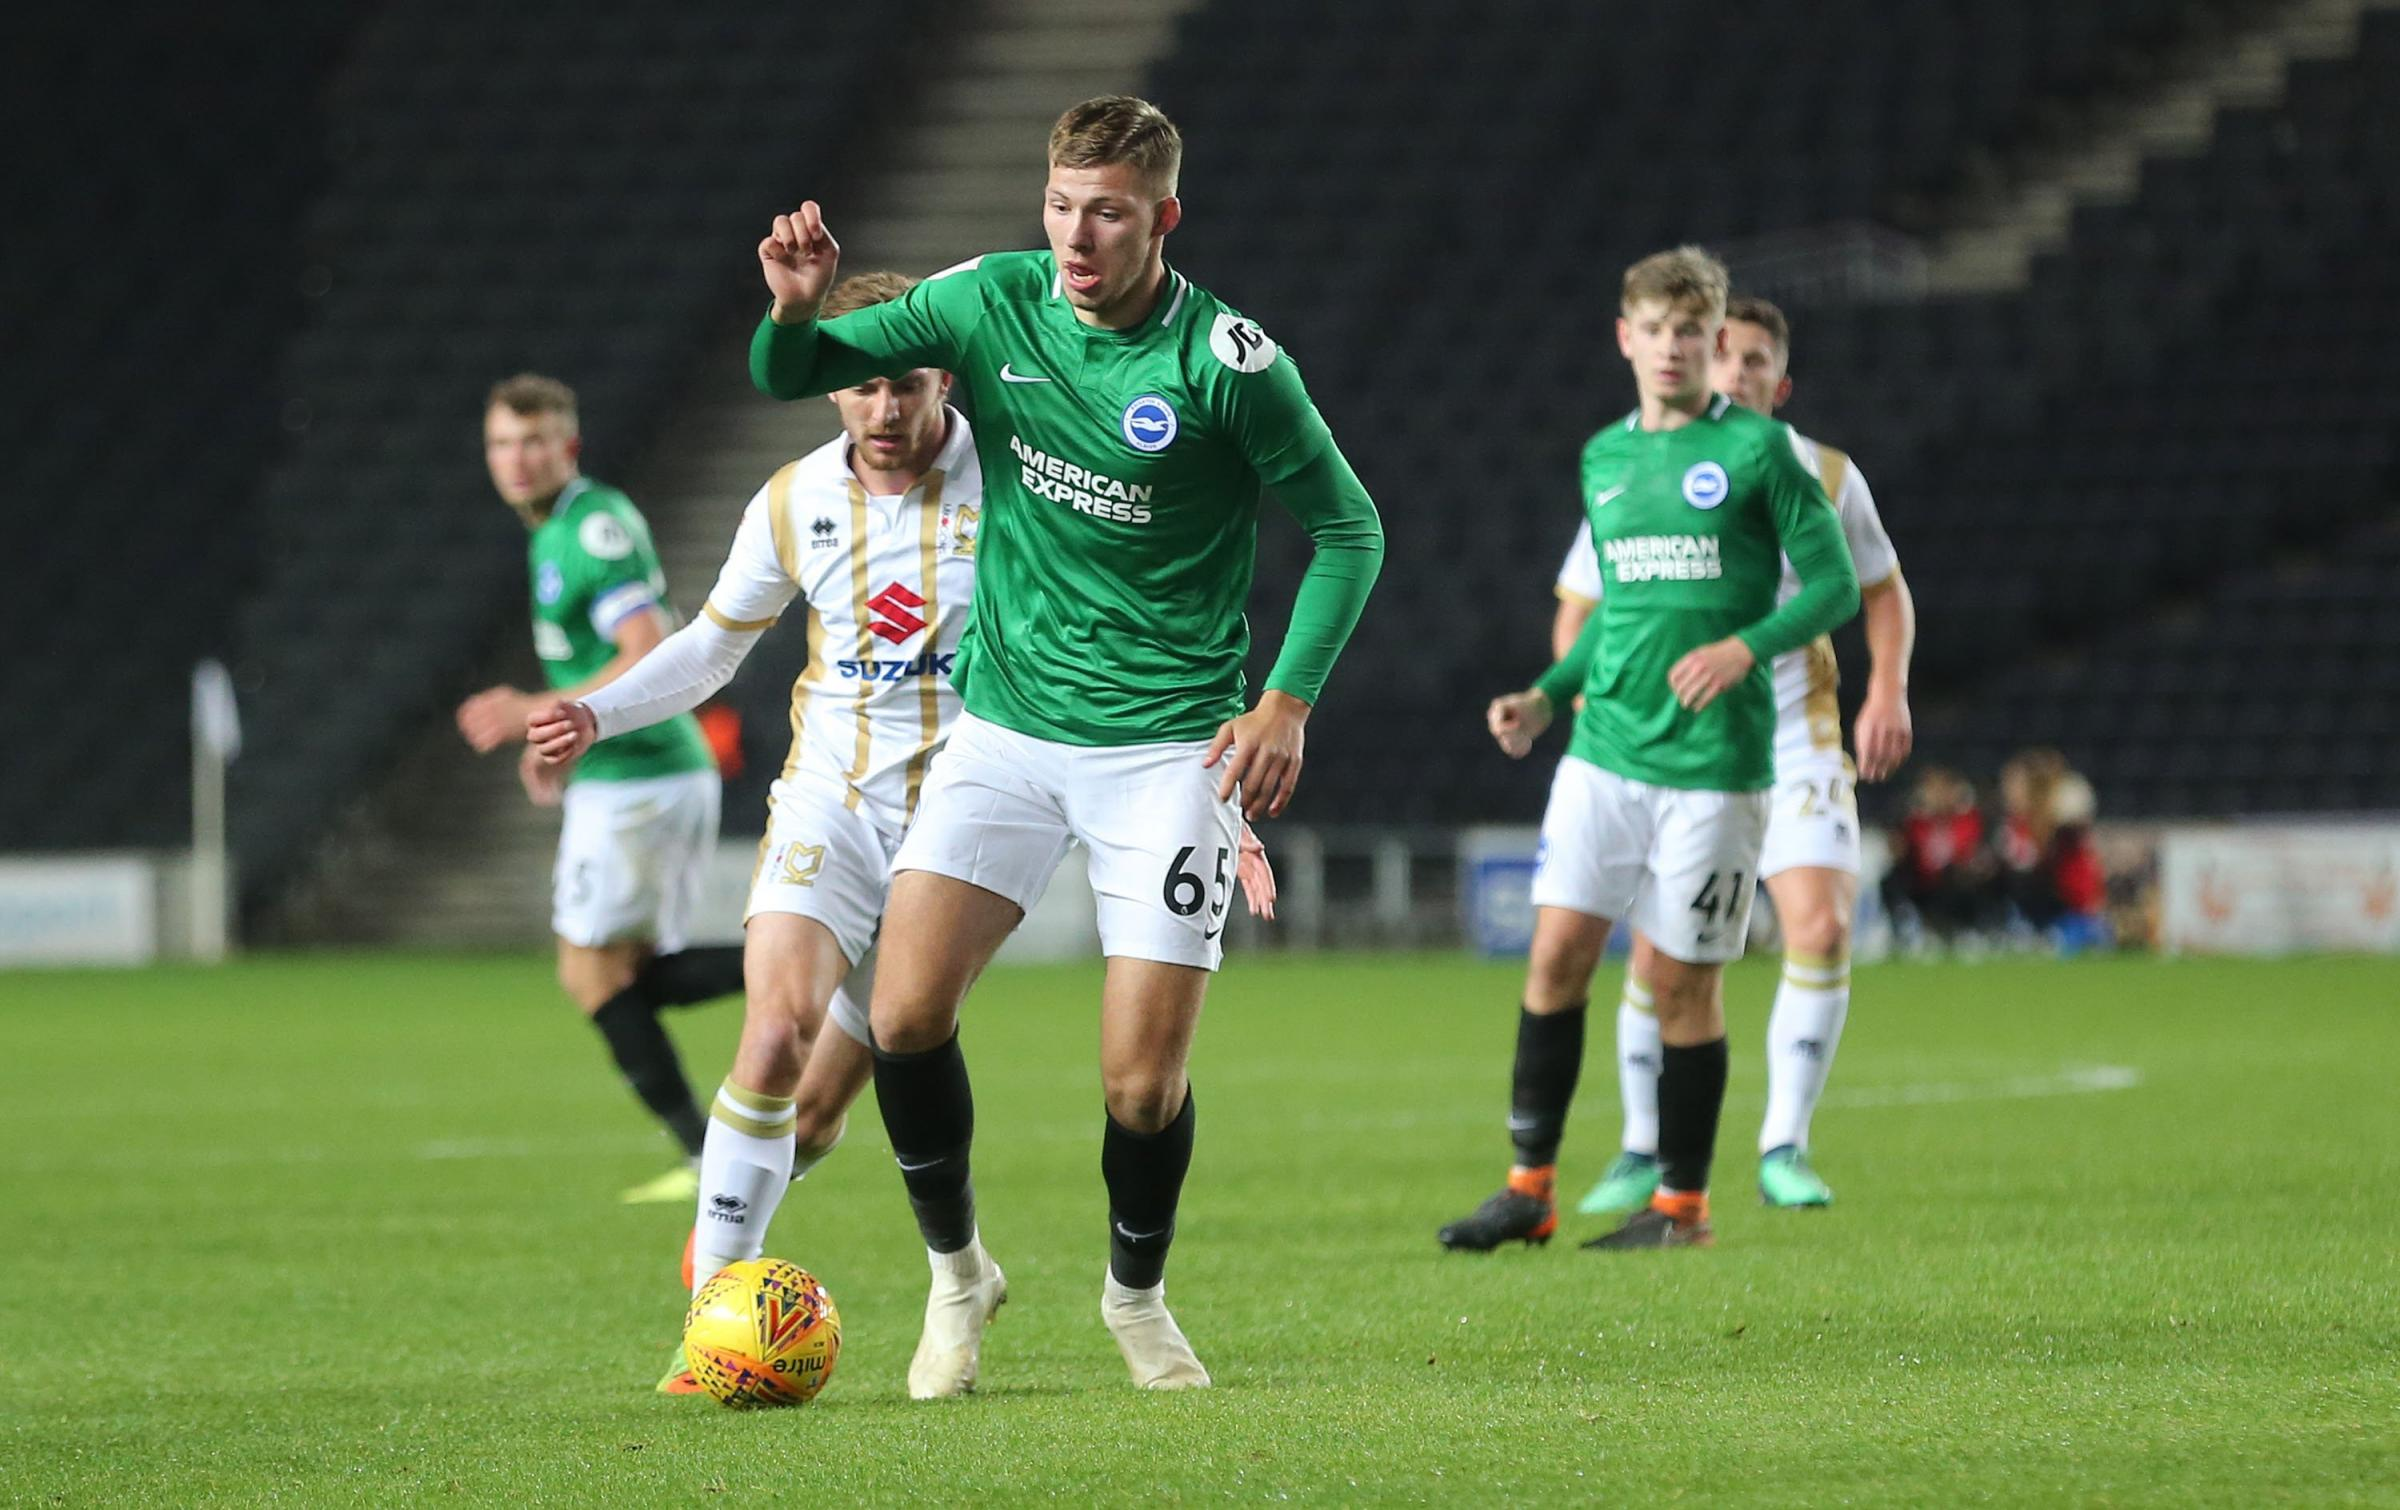 Young Albion striker hopes to follow Gyokeres' lead